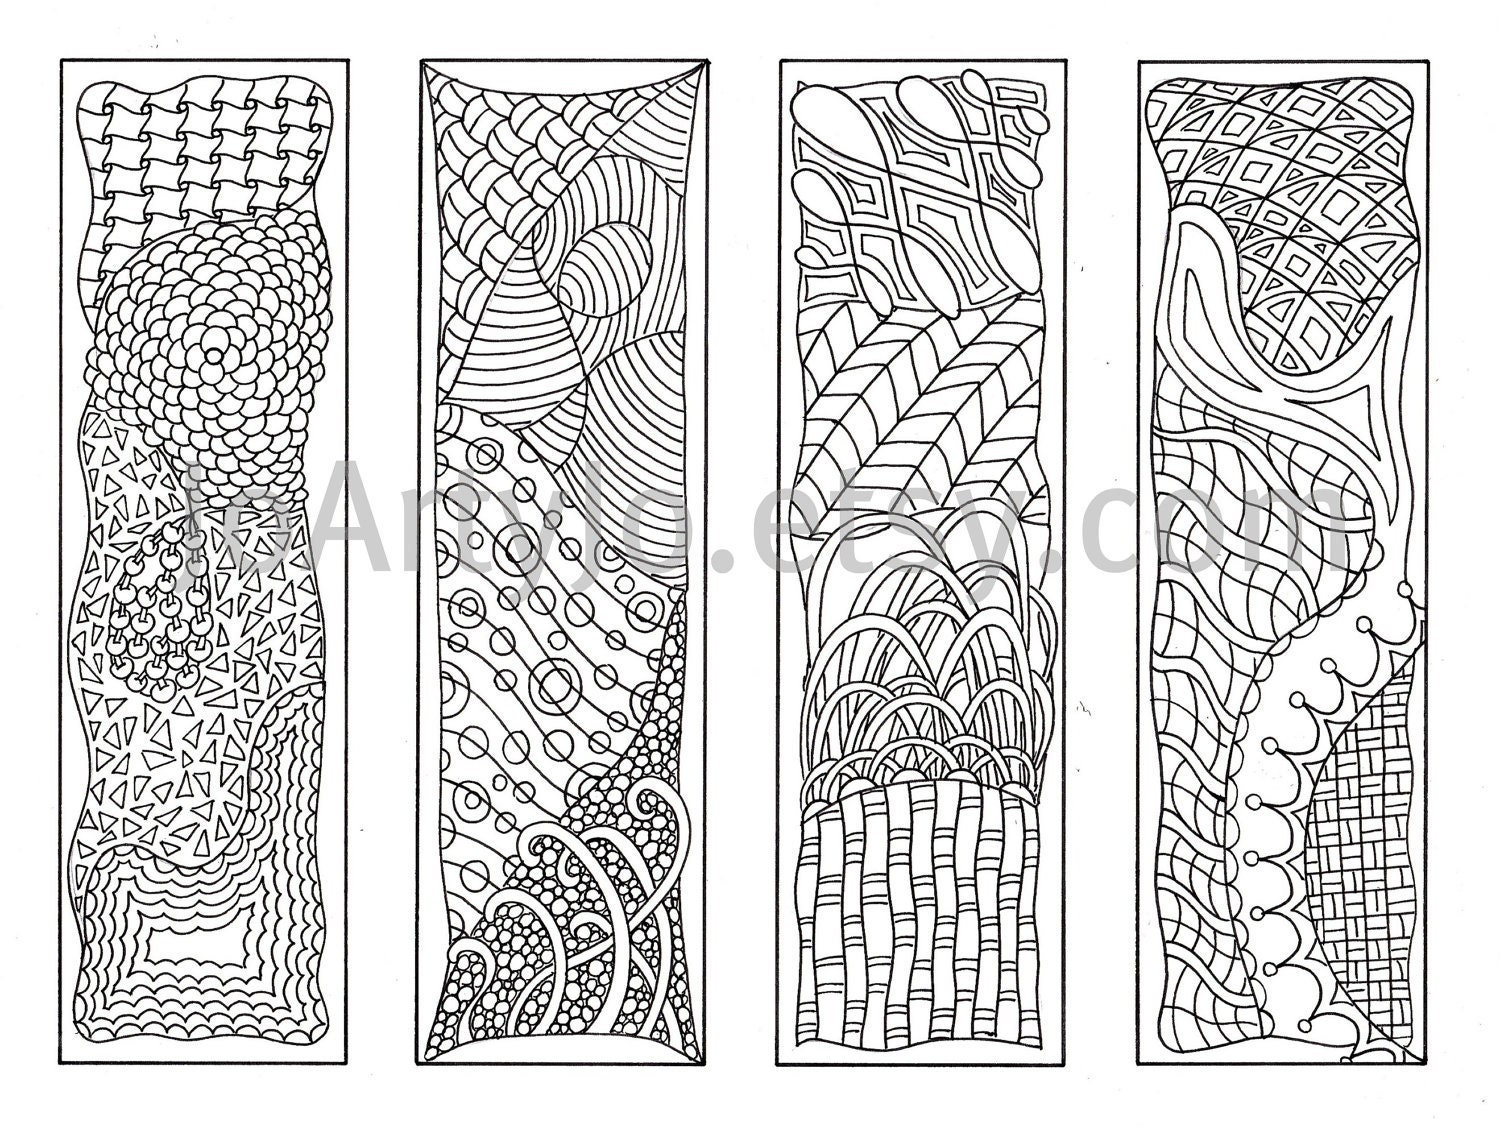 valentine bookmarks to color : Bookmarks To Color Zentangle Inspired Zendoodle Art Printable Coloring Digital Download Sheet 5